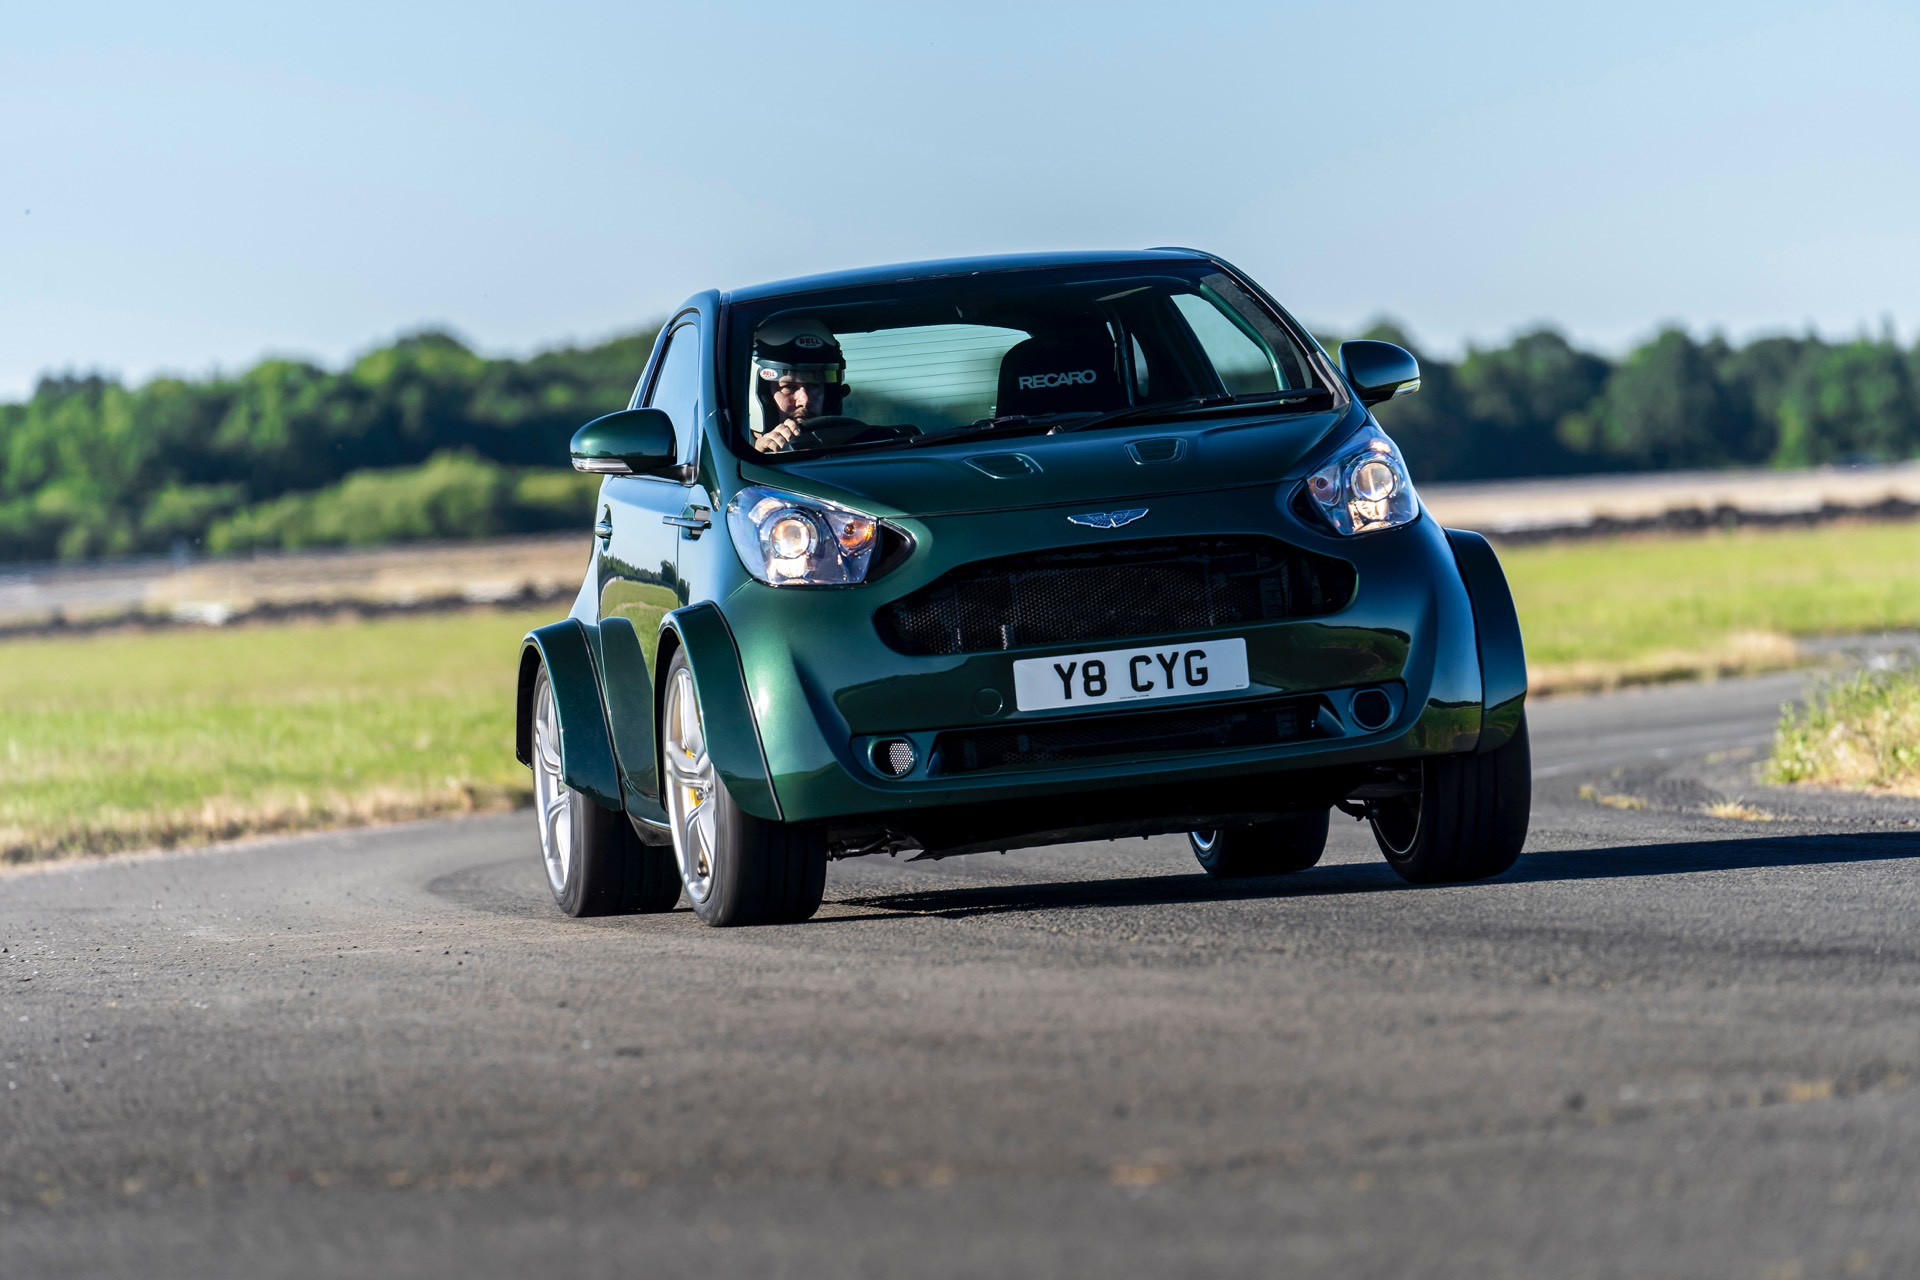 Aston Martin V8 Cygnet Debuts at Goodwood